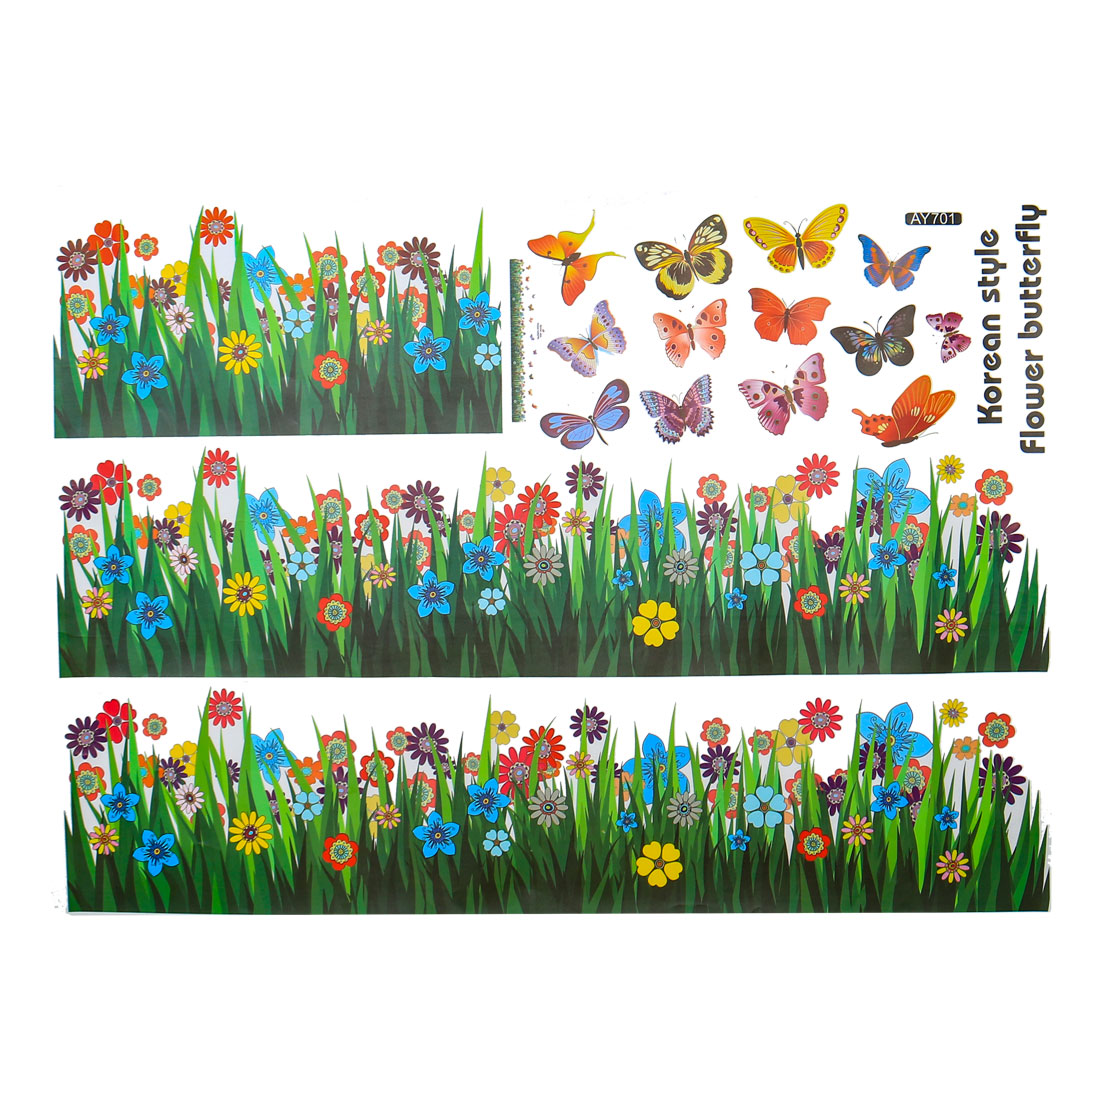 Butterfly Floral Pattern Wall Stickers Removable Decal for Bedroom Living Room